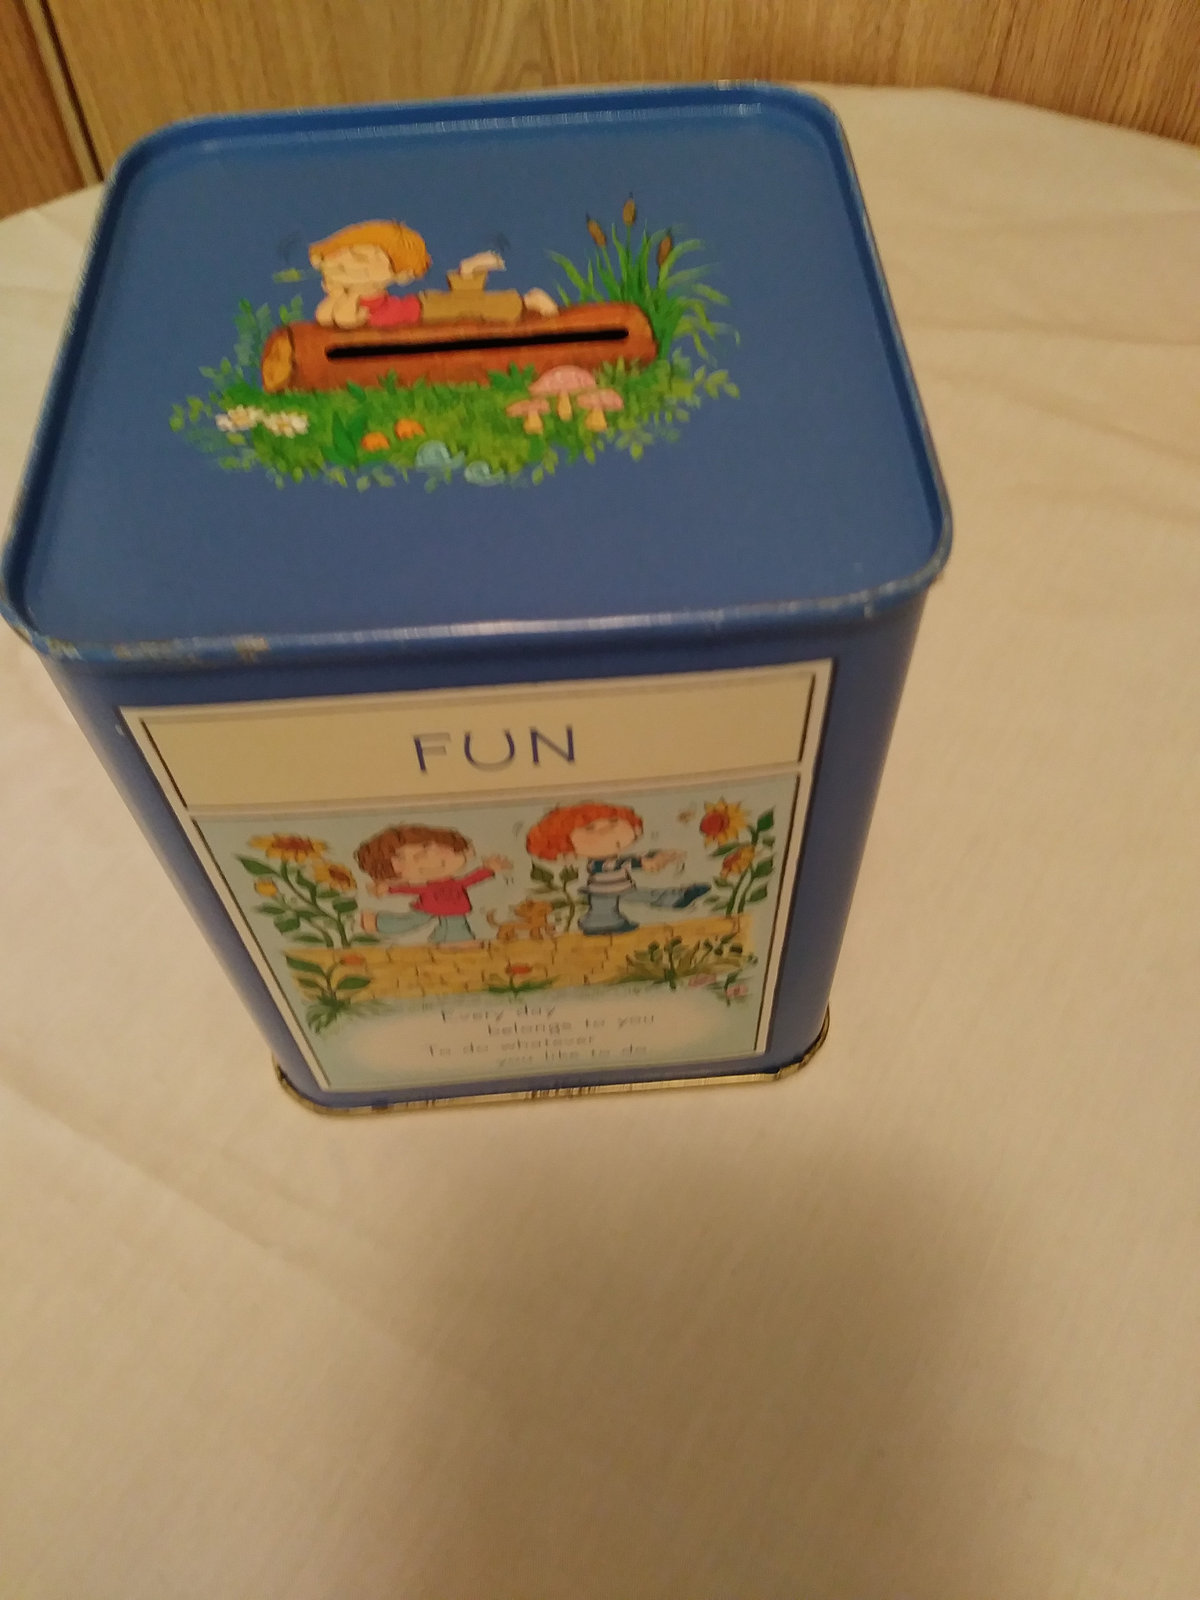 Vintage Hallmark Coin Tin Collectible Adventure, Fun,Discovery,Imagination Child